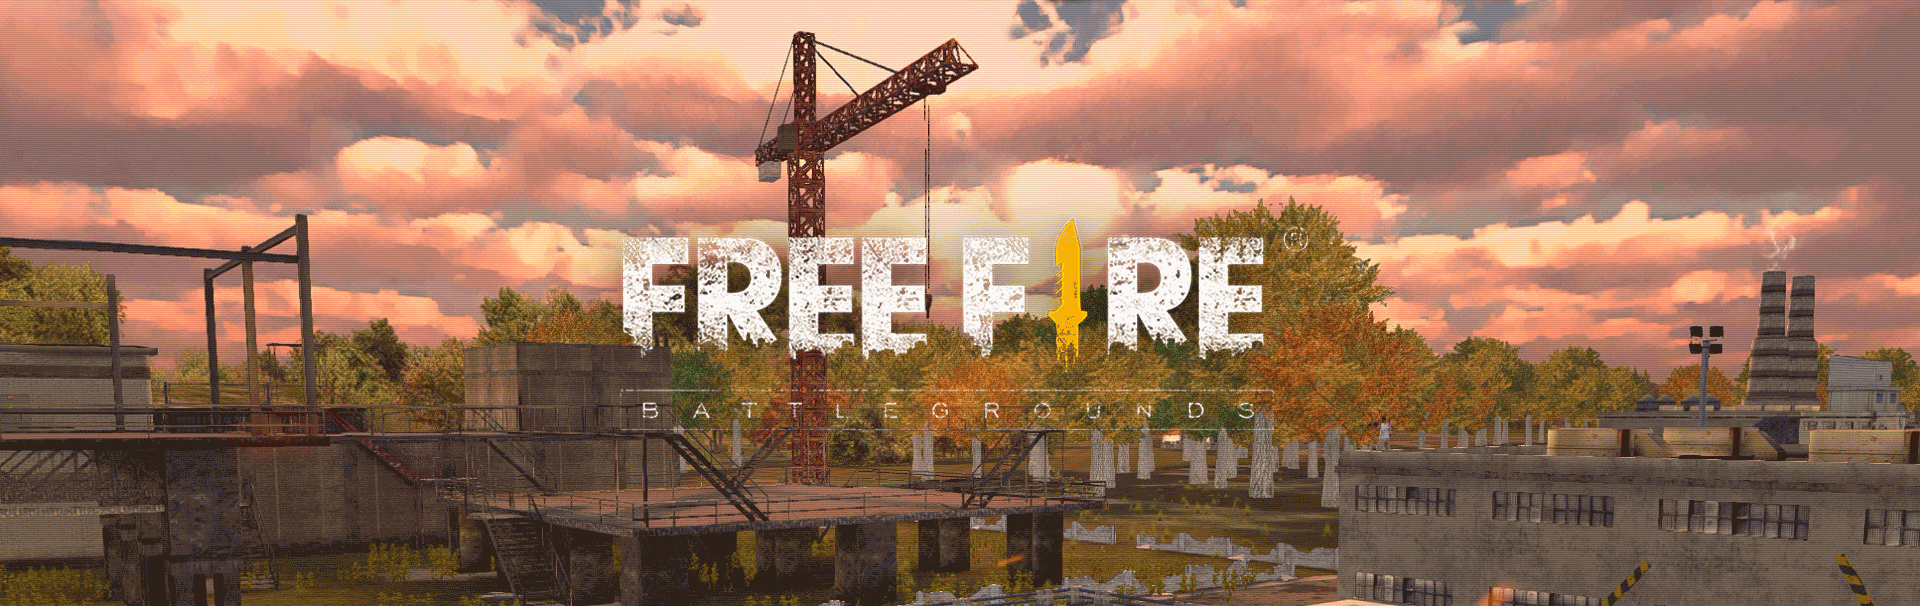 play free fire battlegrounds on pc